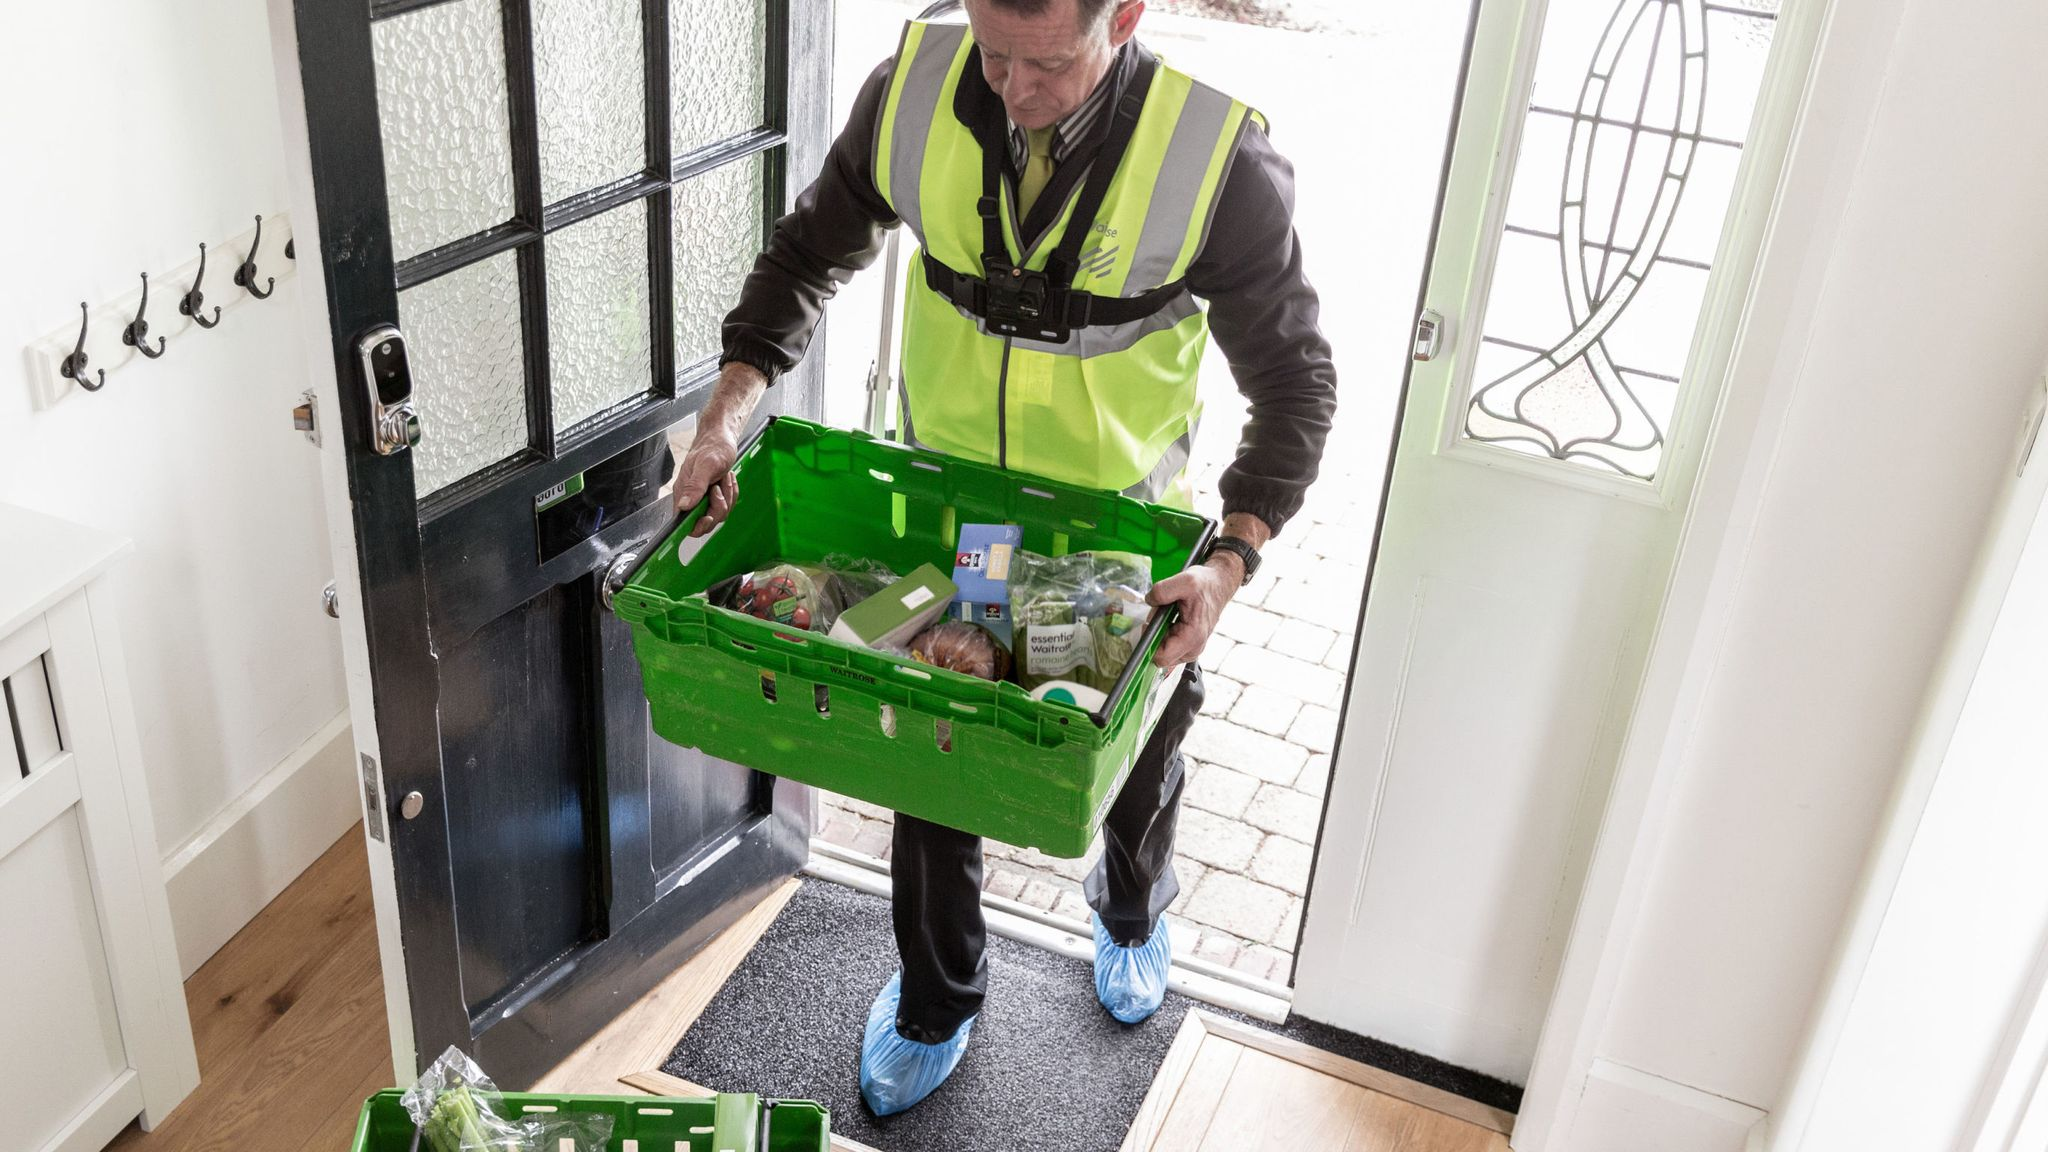 Waitrose to trial unpacking shopping as part of home delivery